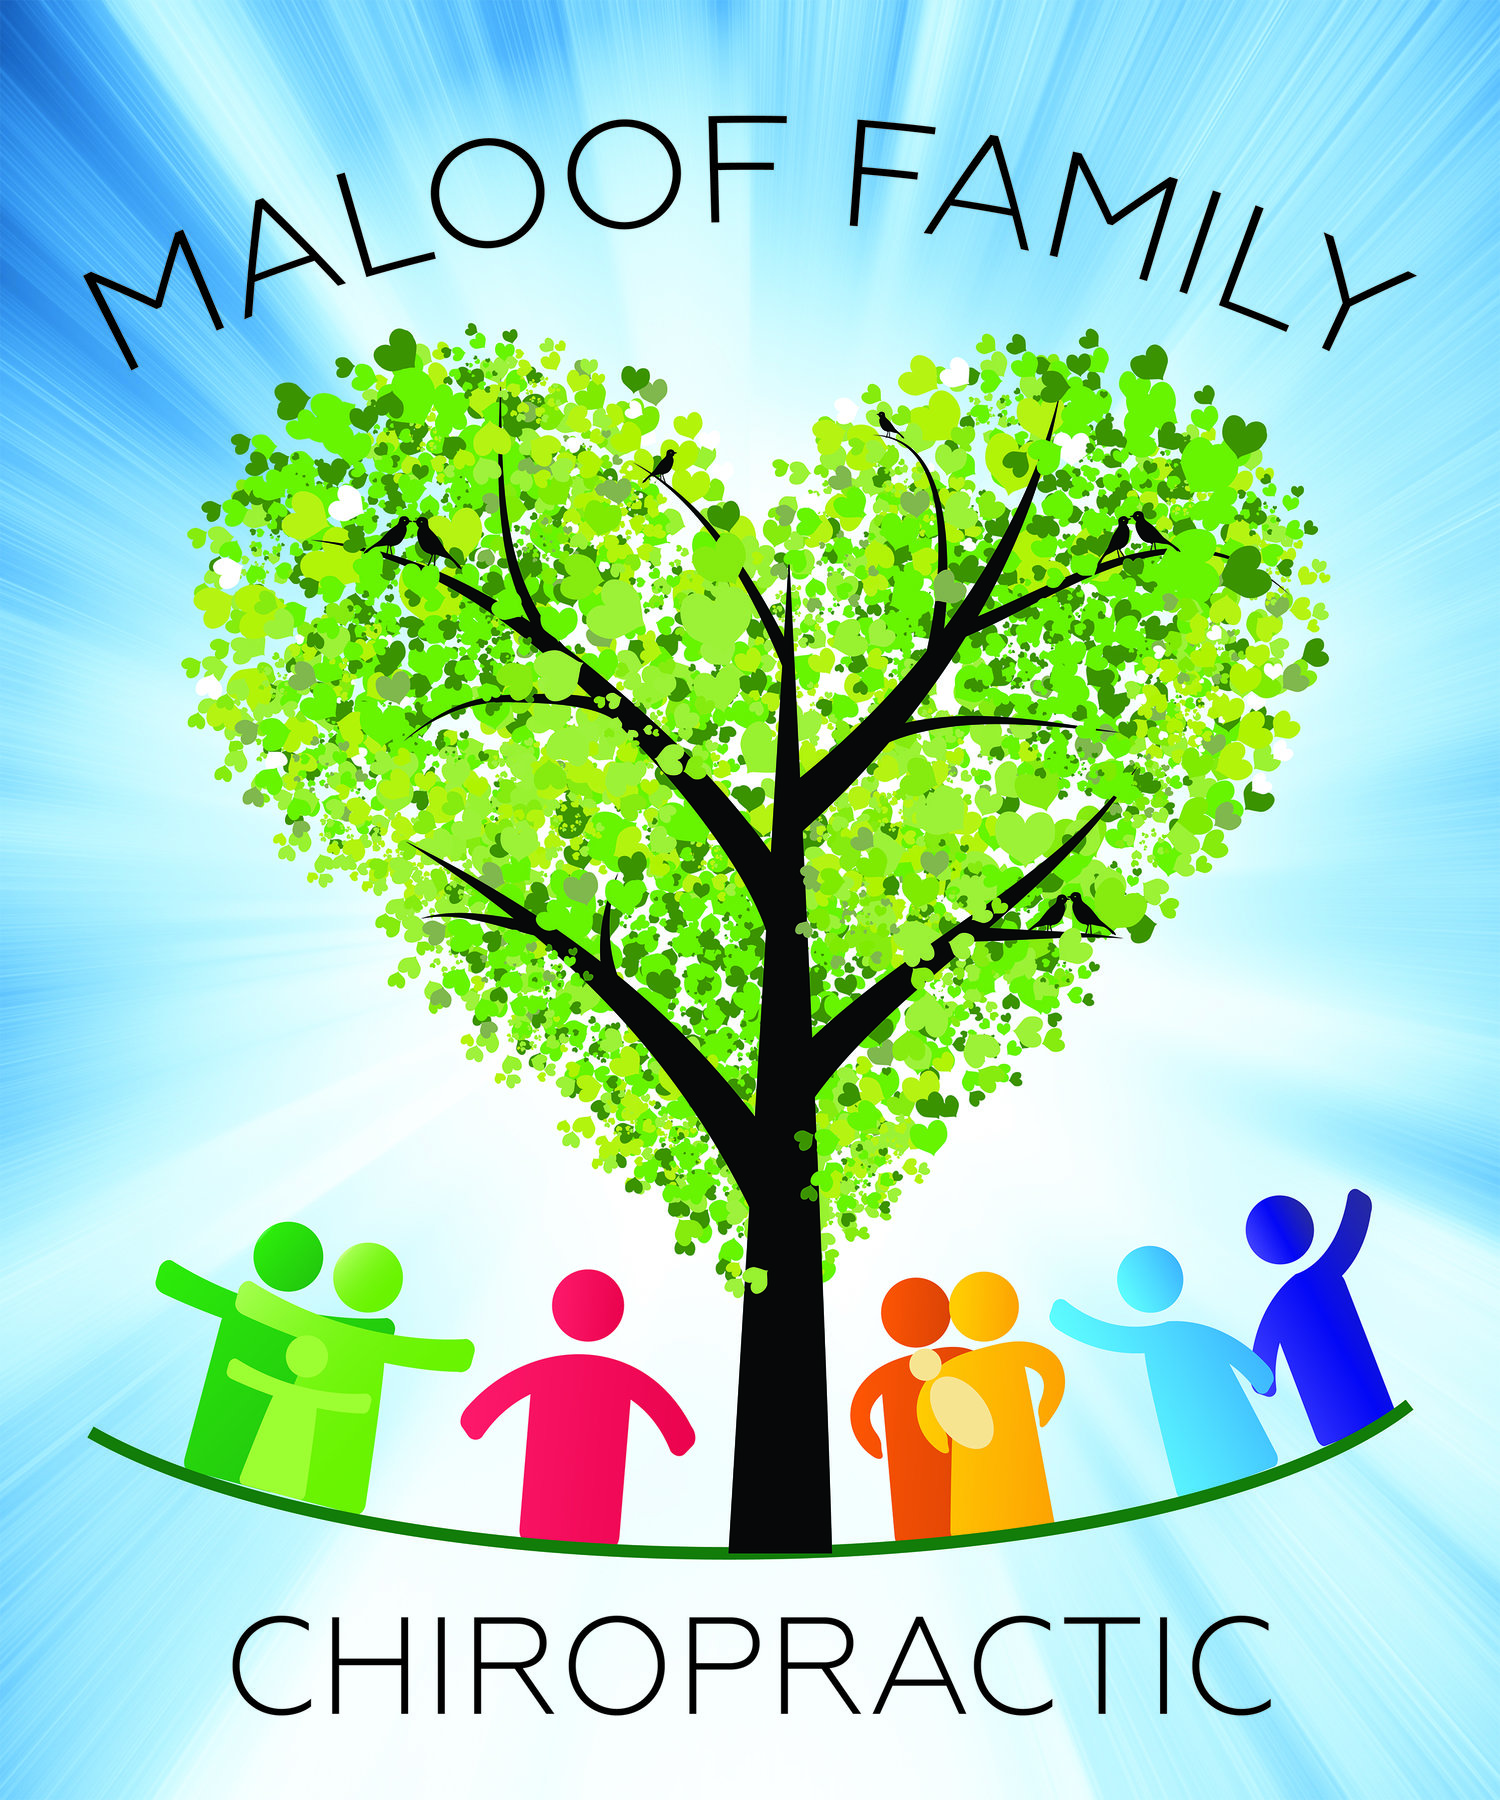 Maloof Family Chiropractic